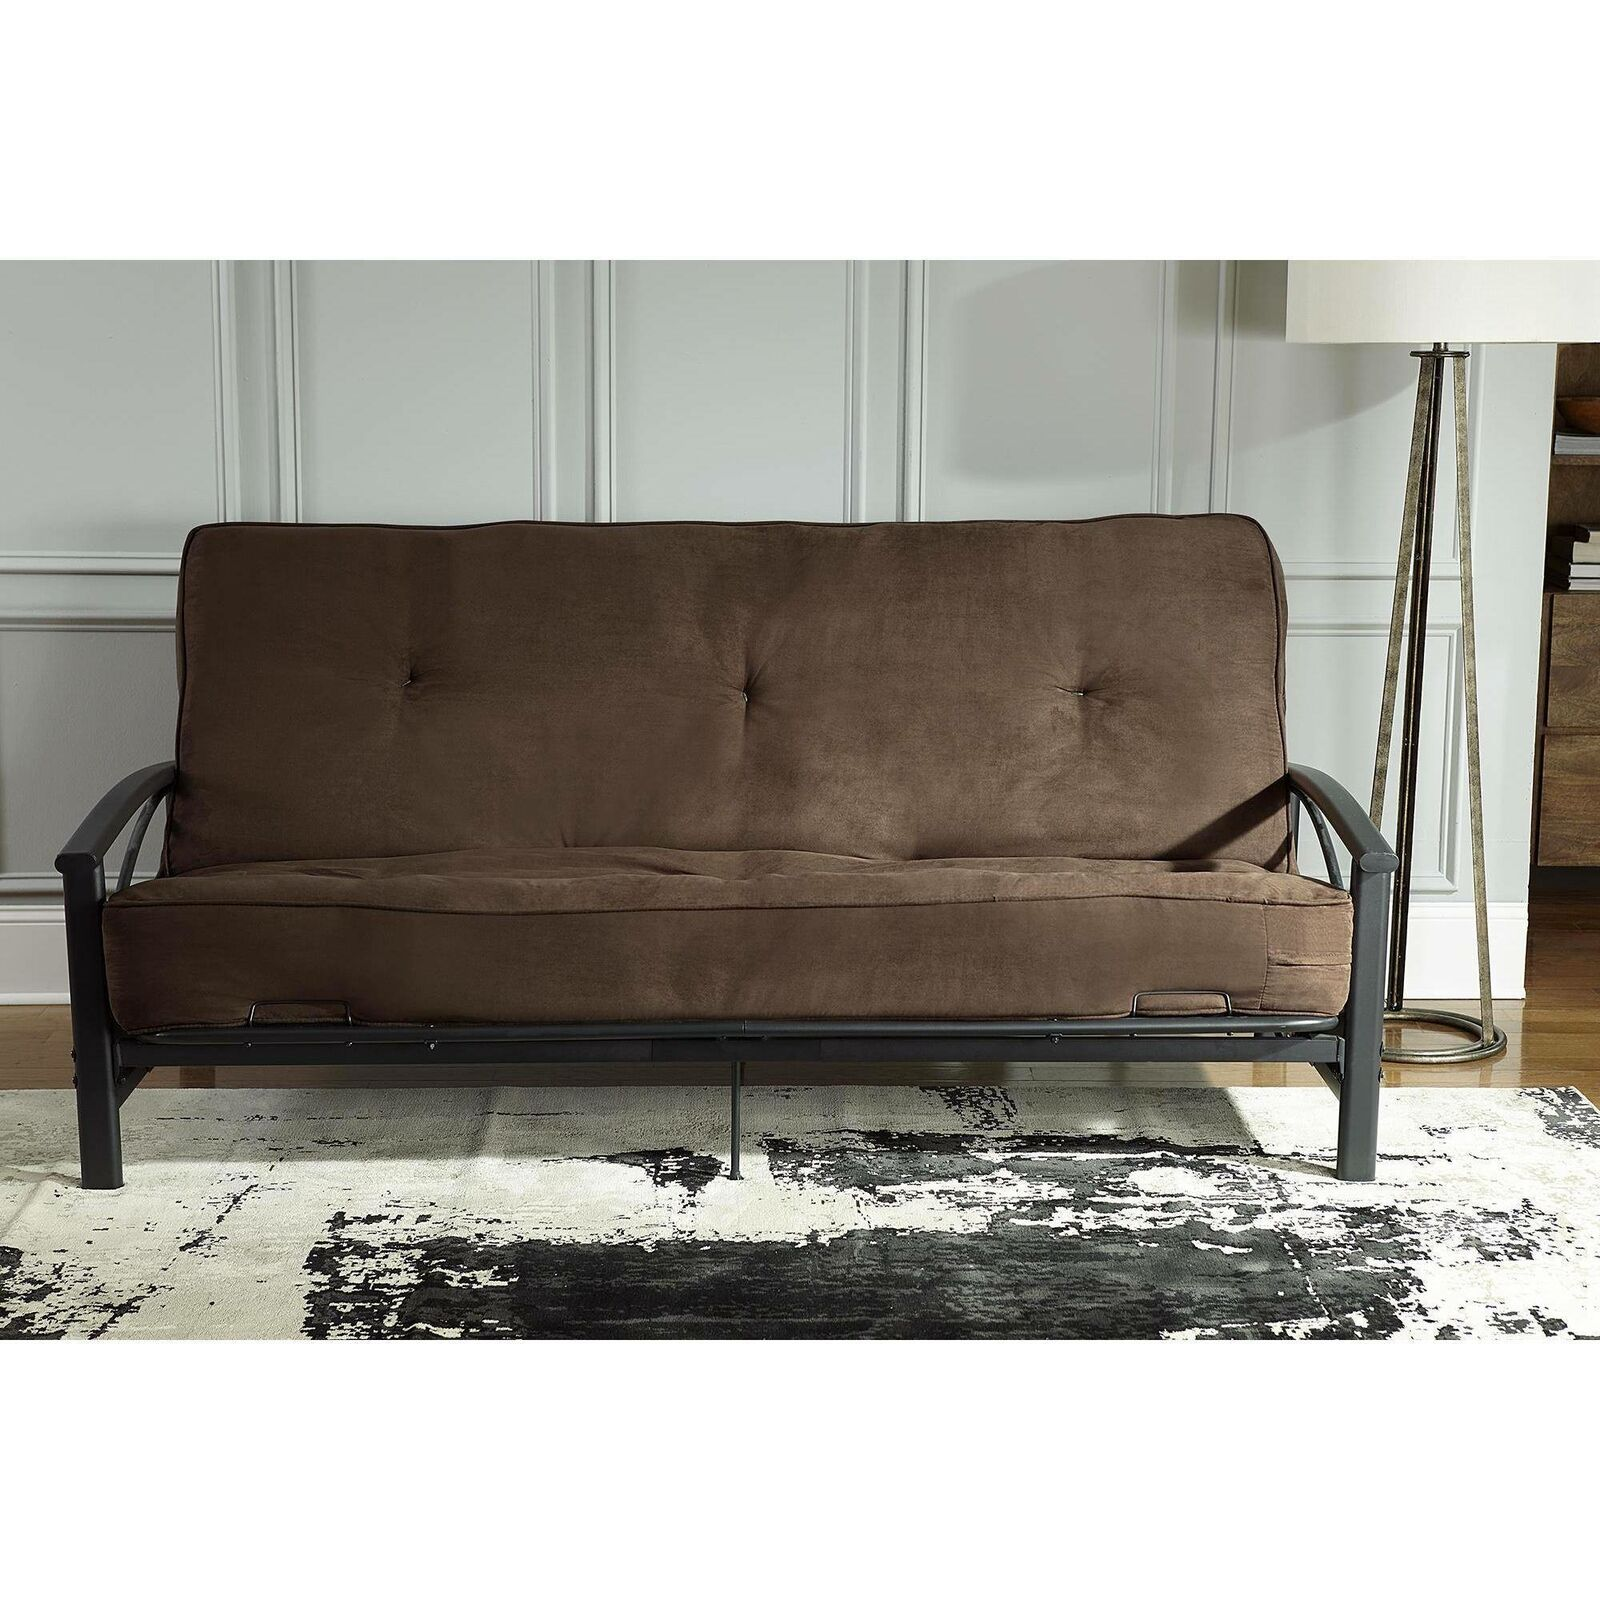 Full Size,... DHP 8-Inch Independently-Encased Coil Premium Futon Mattress